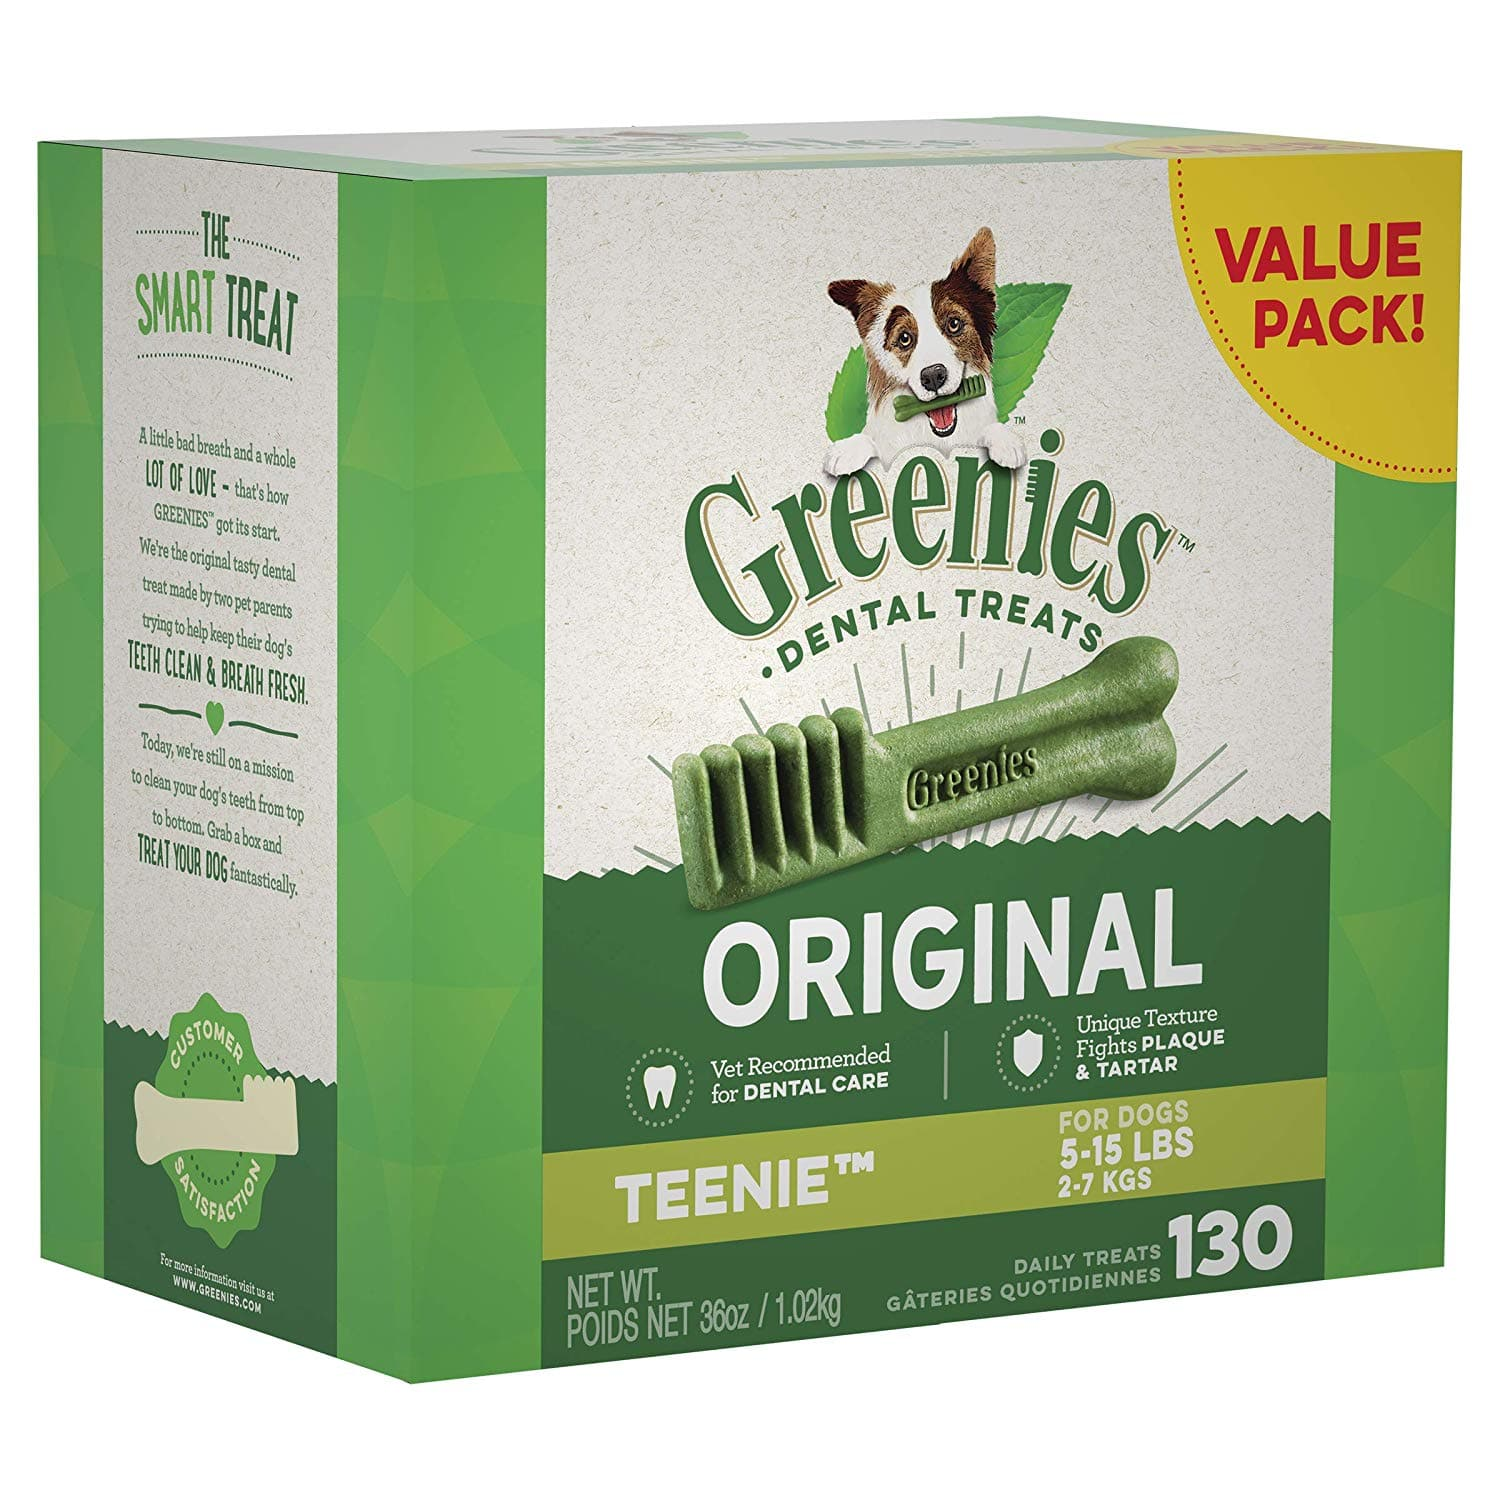 YMMV Greenies Dog Dental Chews Dog Treats - Teenie Size (5-15 lb Dogs) - 130 count for 16.99 shipped plus tax $16.99